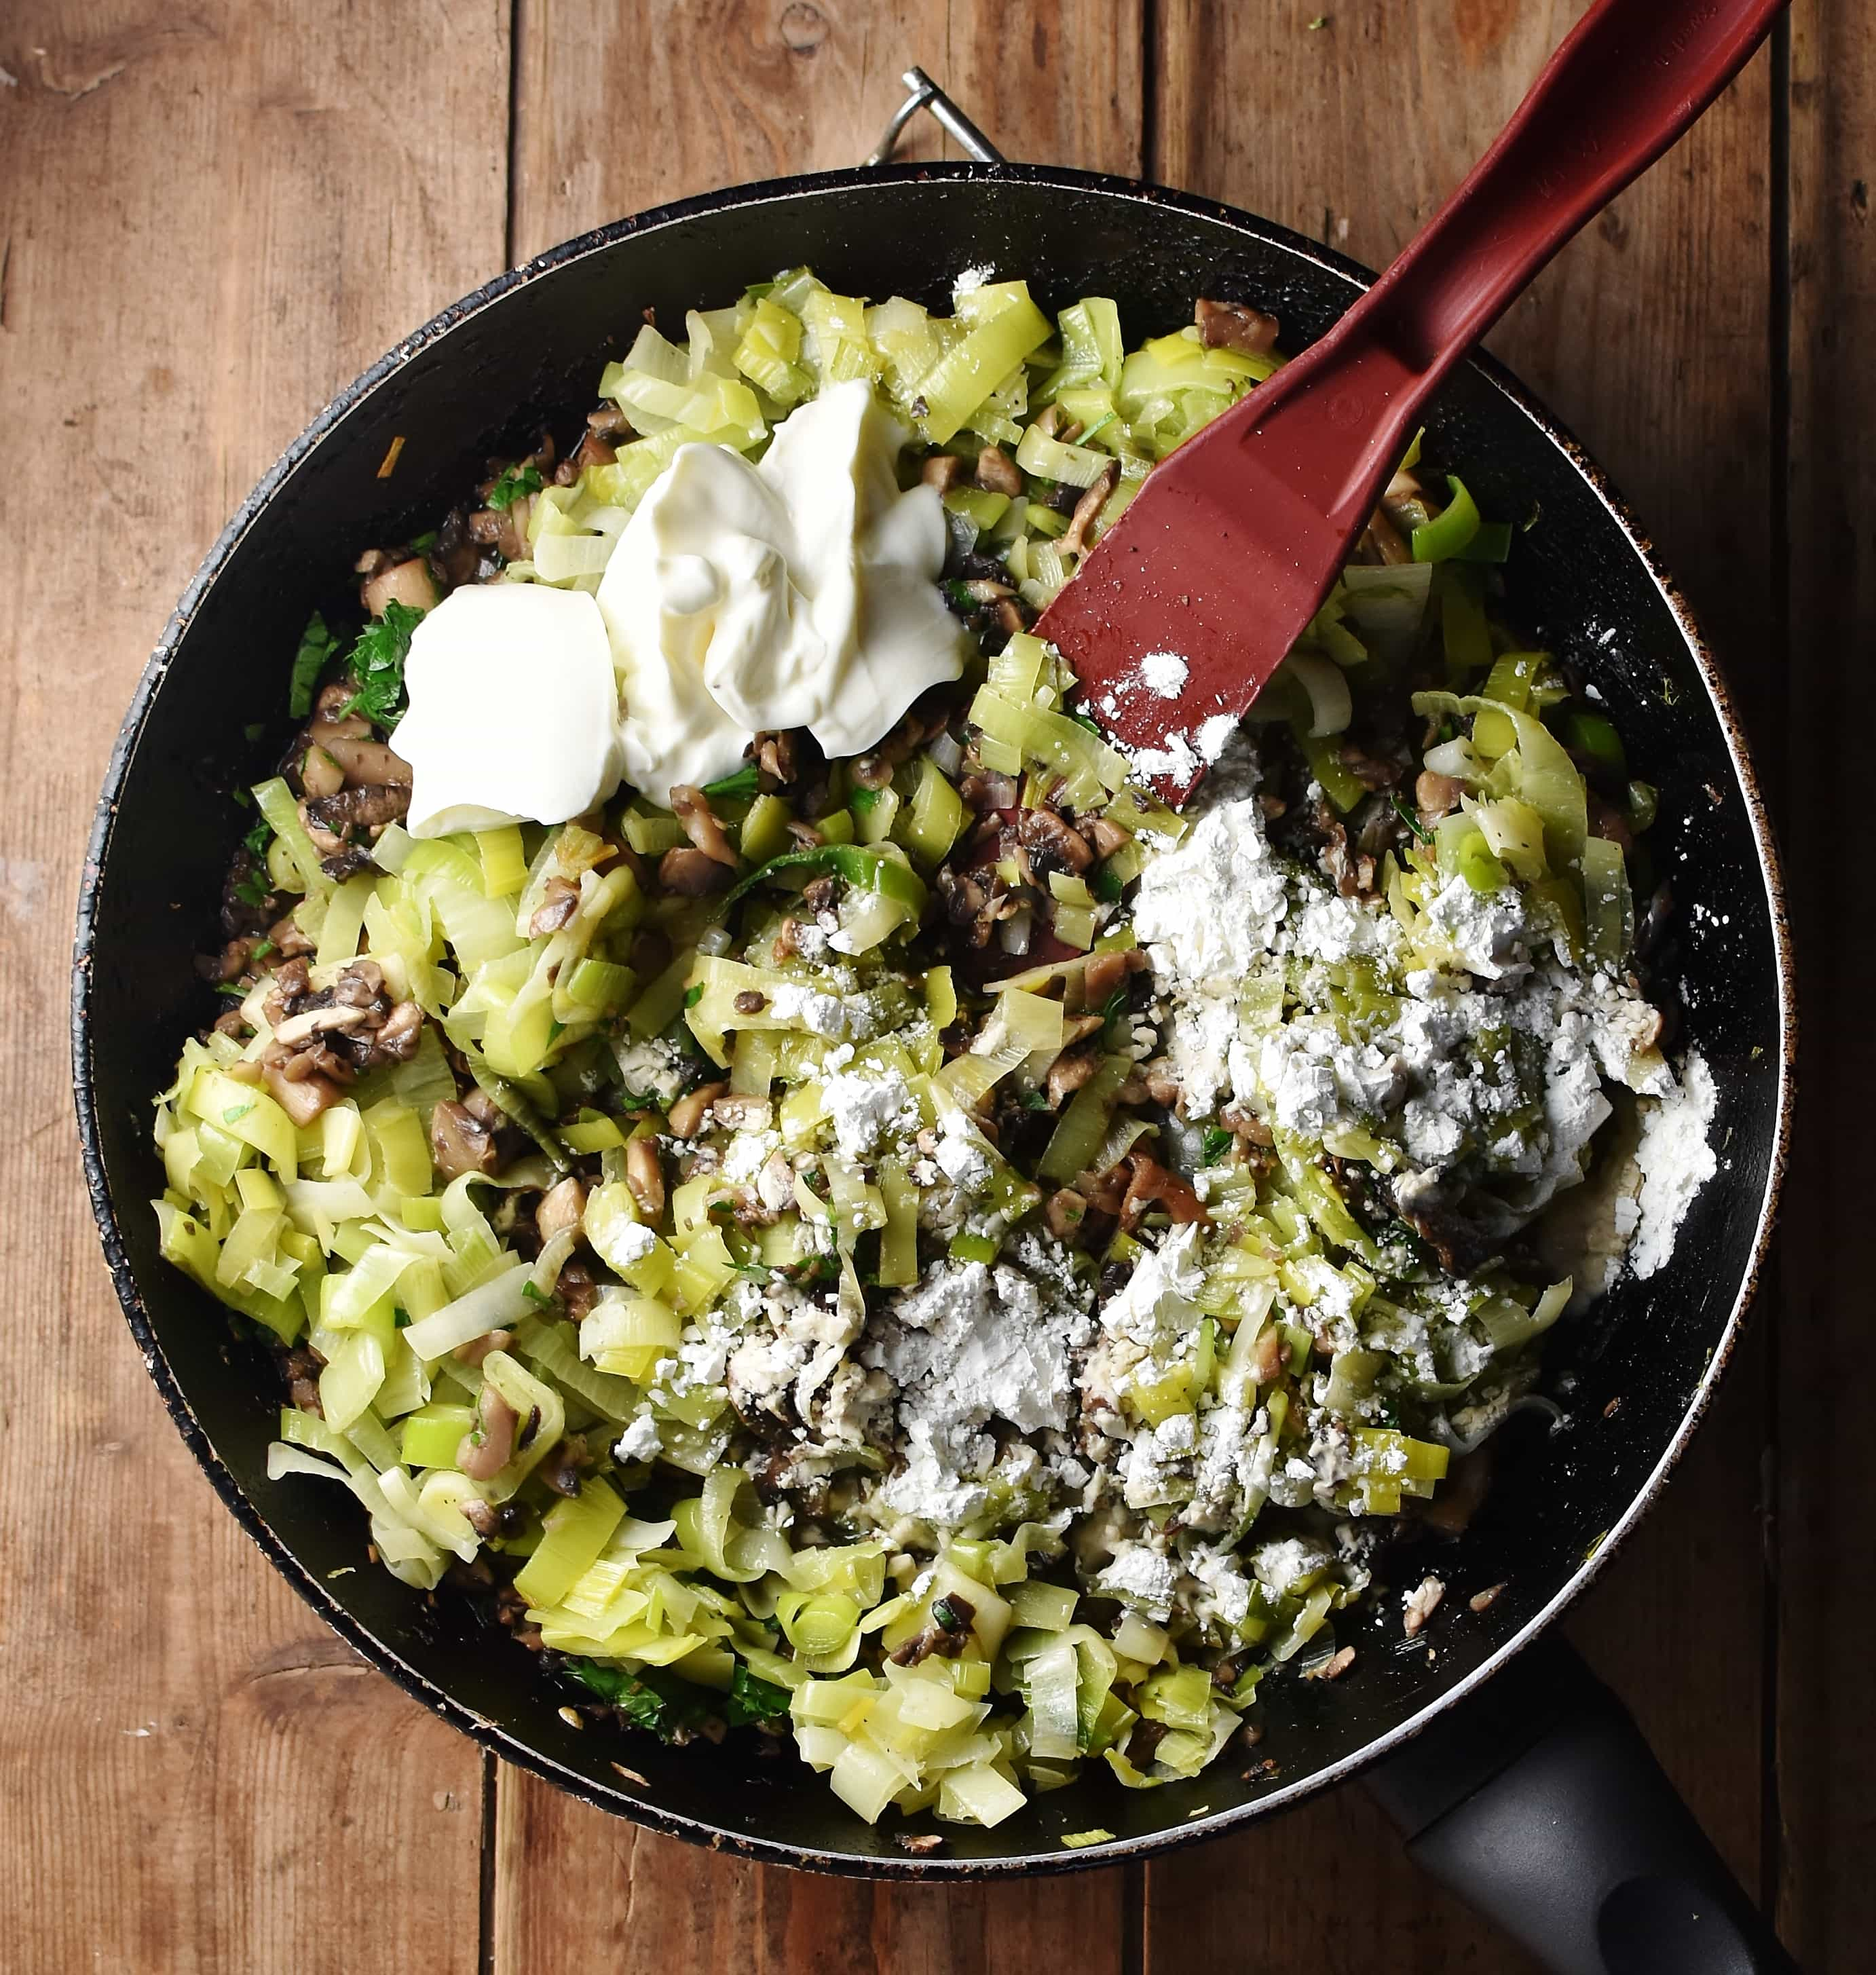 Chopped leeks, mushrooms, yogurt and flour in large skillet with red spatula.